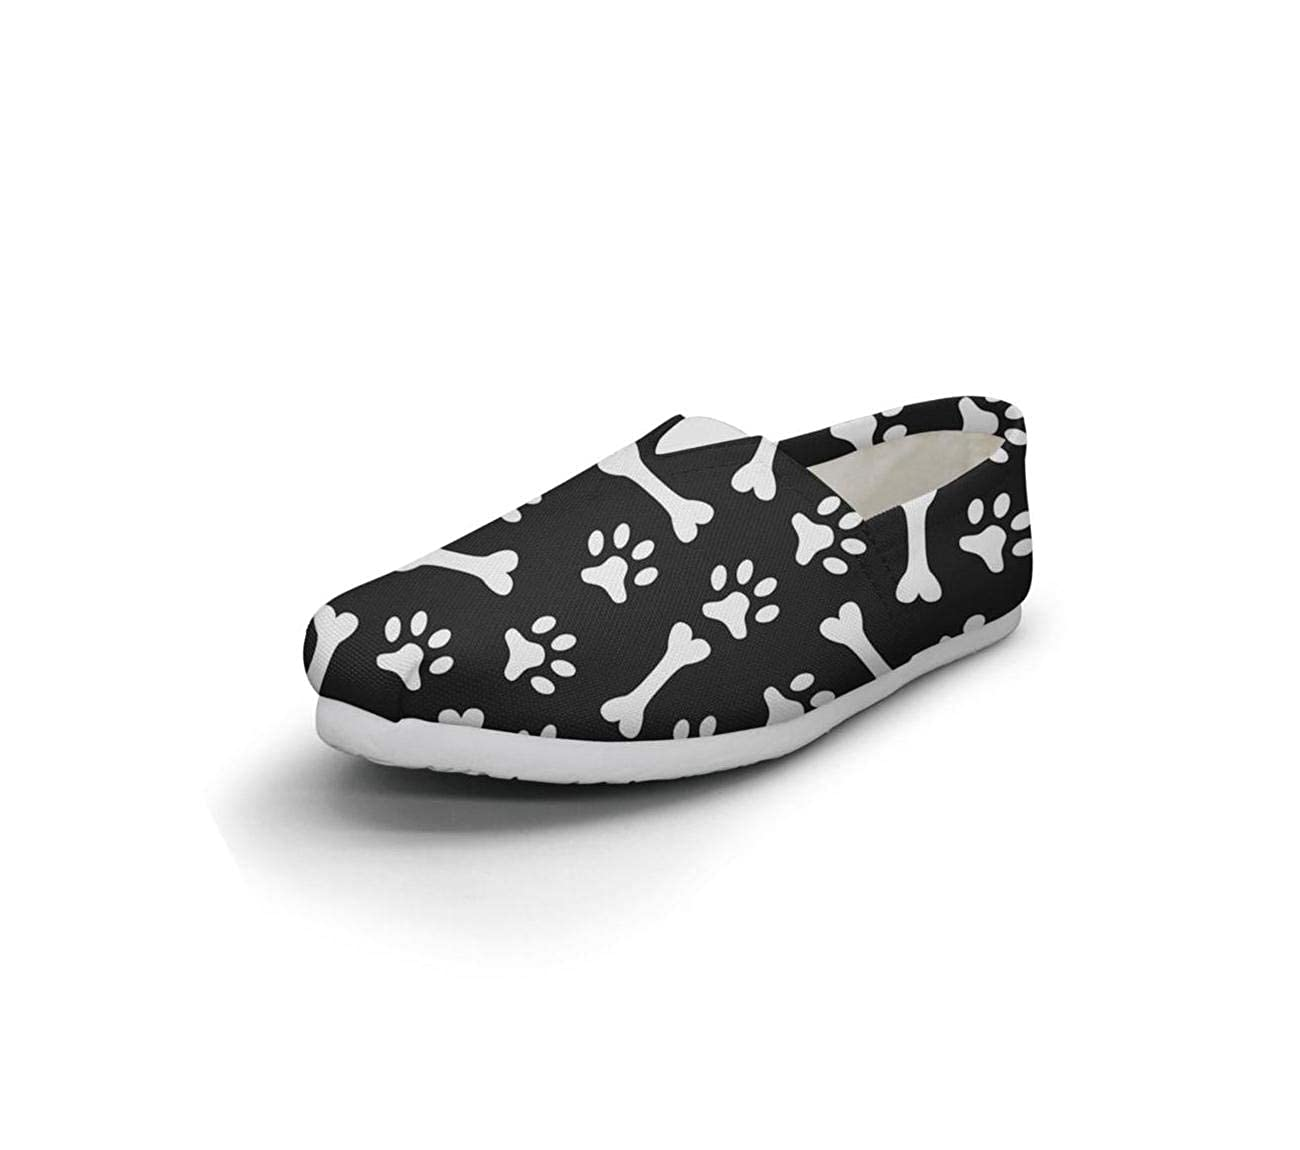 Colorful Paw Dog Blacl Backdrop Seasonal Classics Womens Comfort Flat Slip on Shoes Girls Loafer Shoes